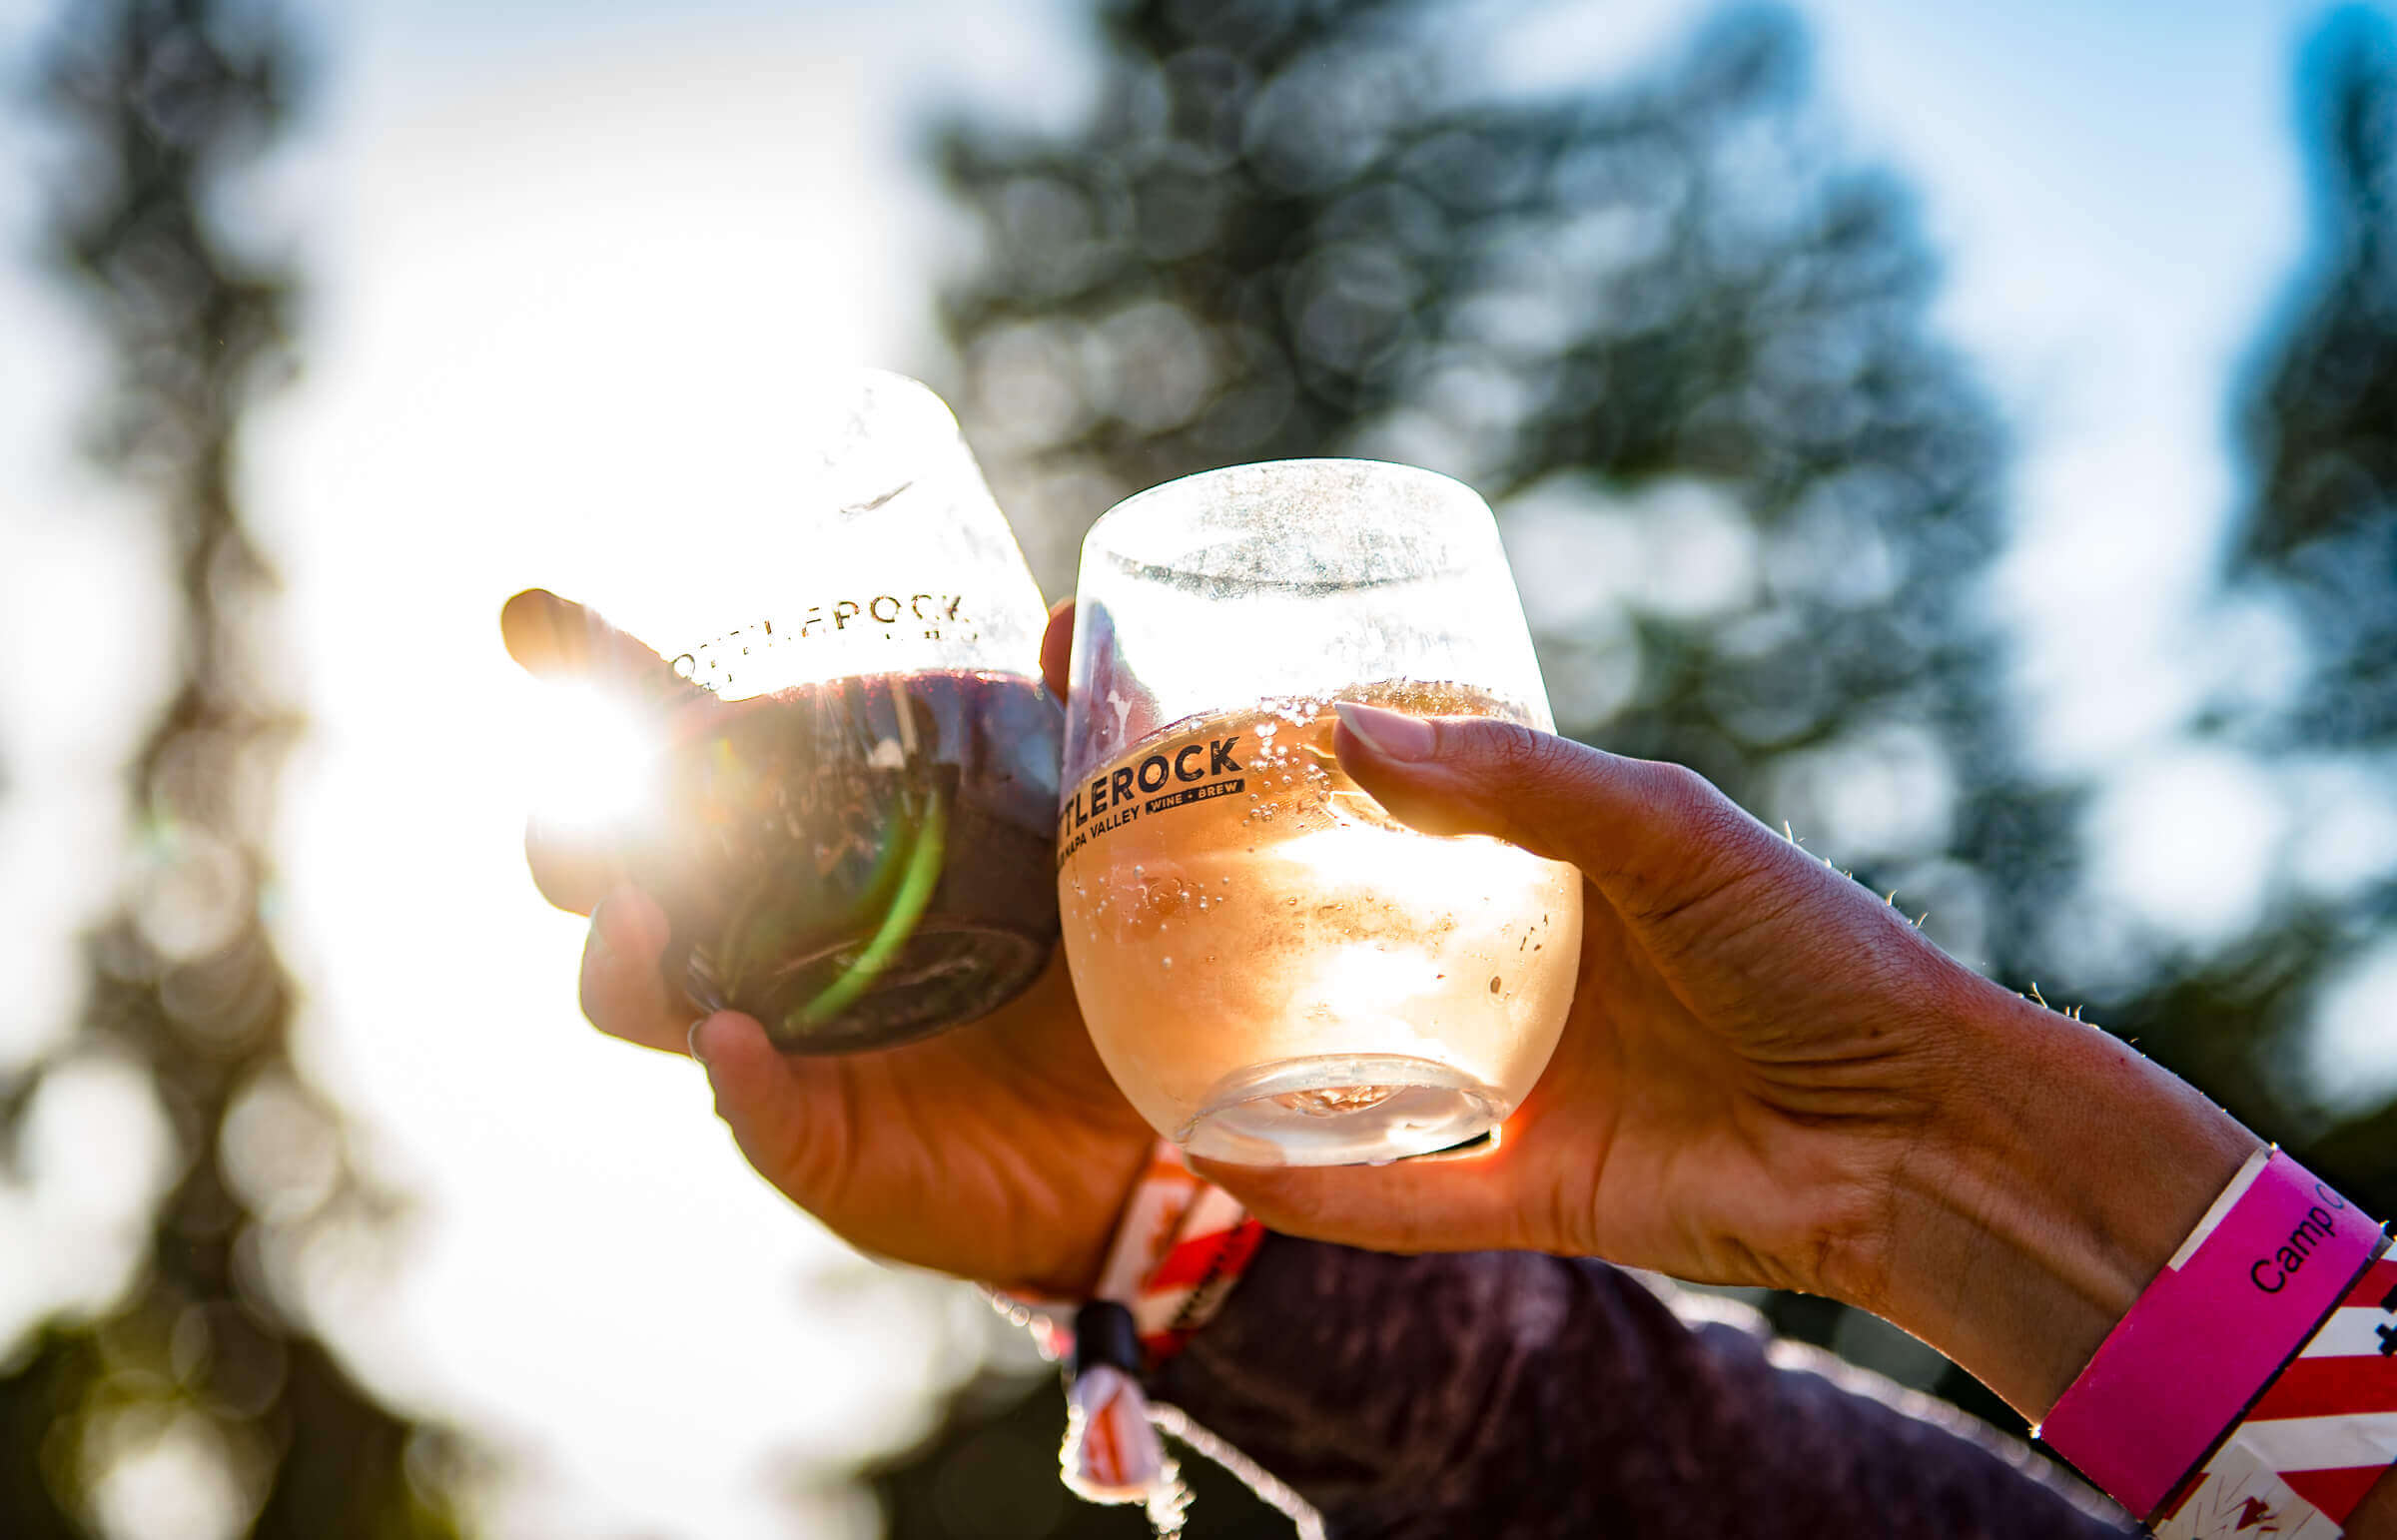 At BottleRock - two hands holding wine glasses